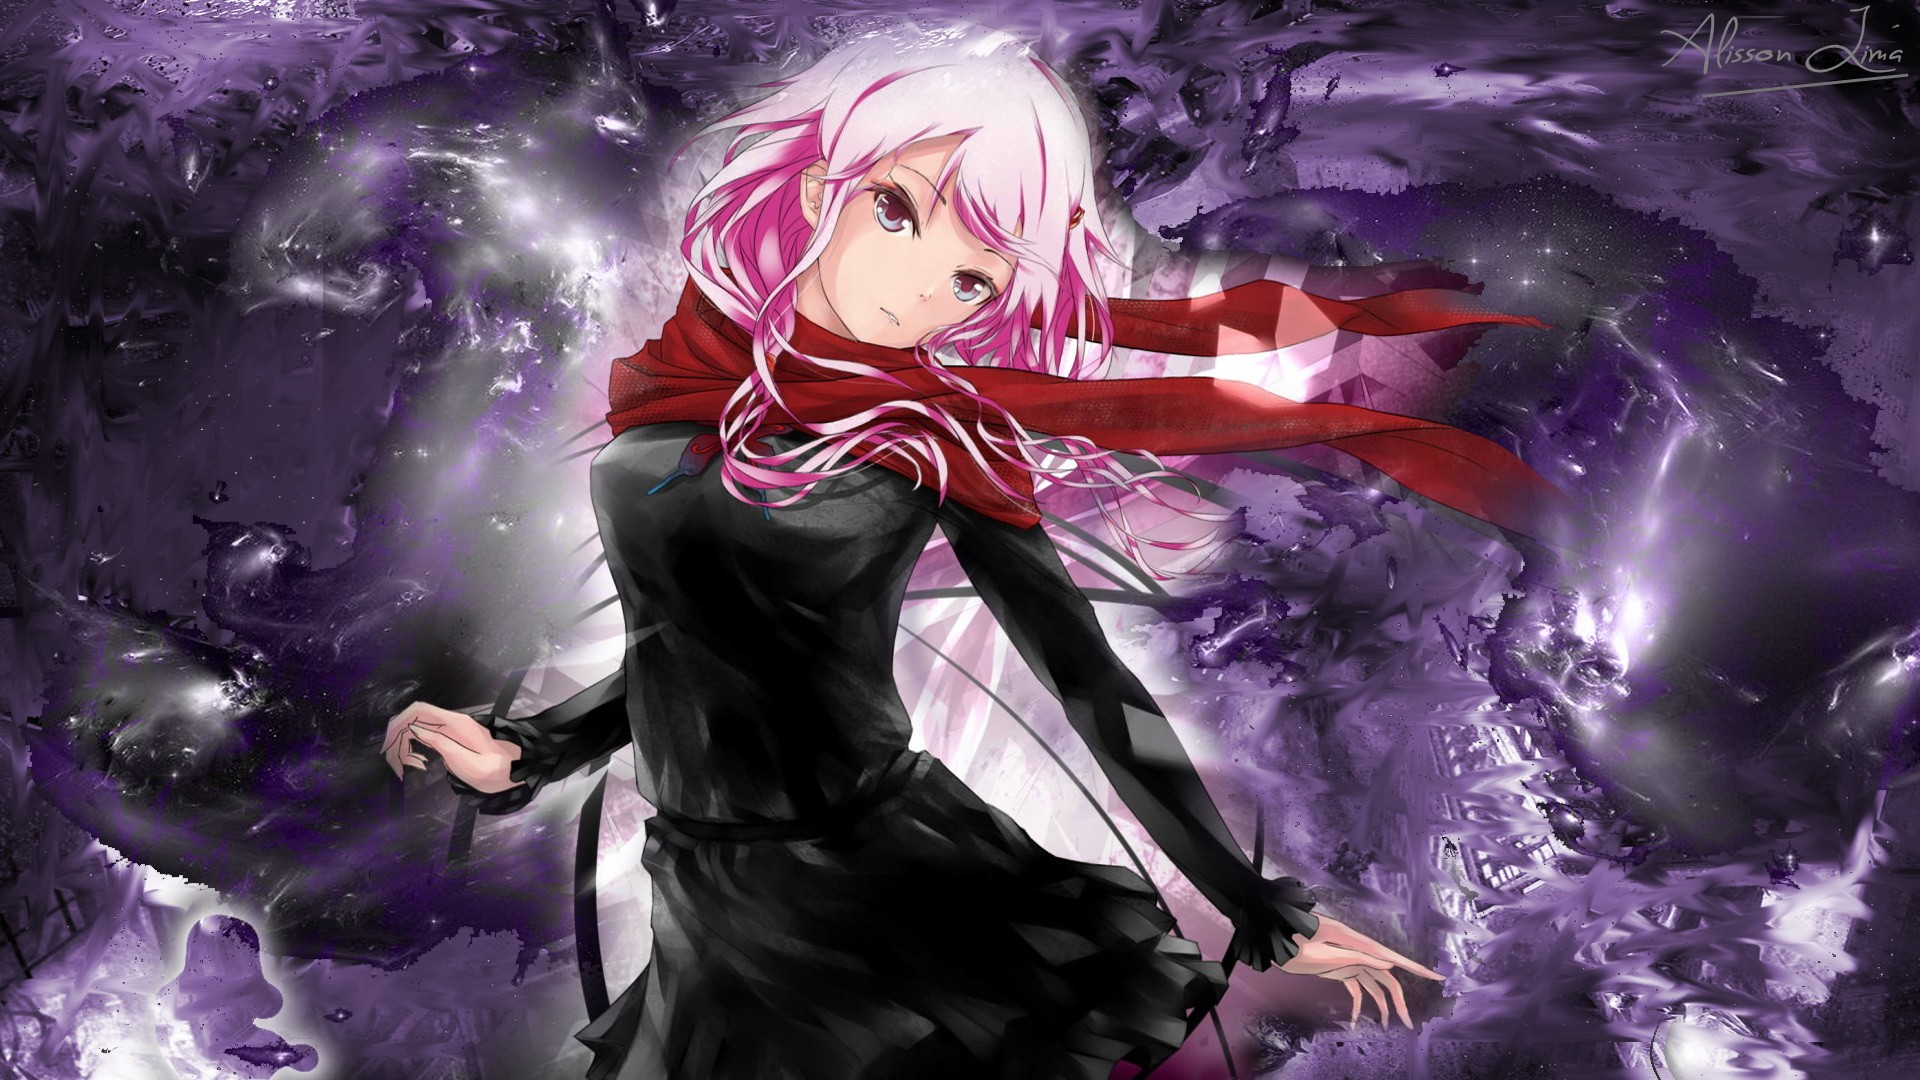 Inori Yuzuriha Full HD Wallpaper And Background Image